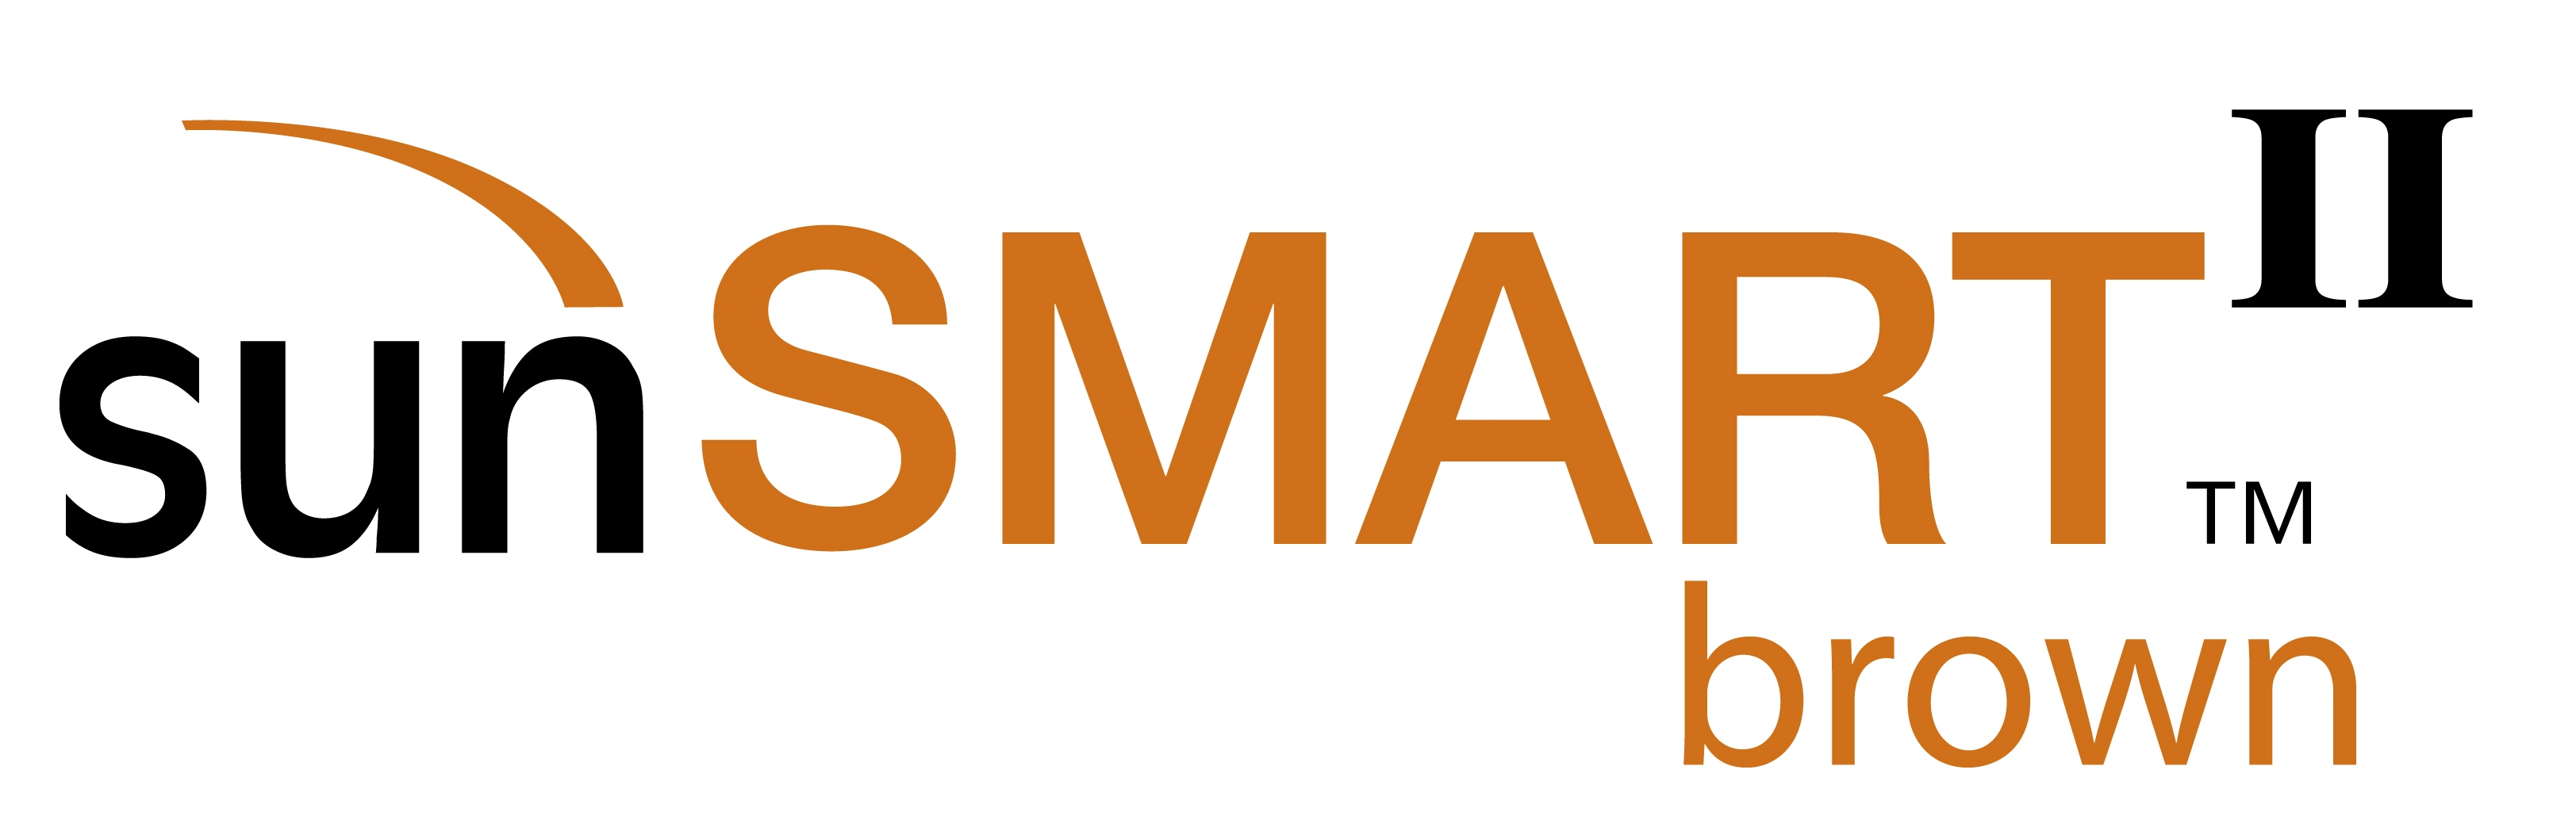 sunSMARTbrown II logo